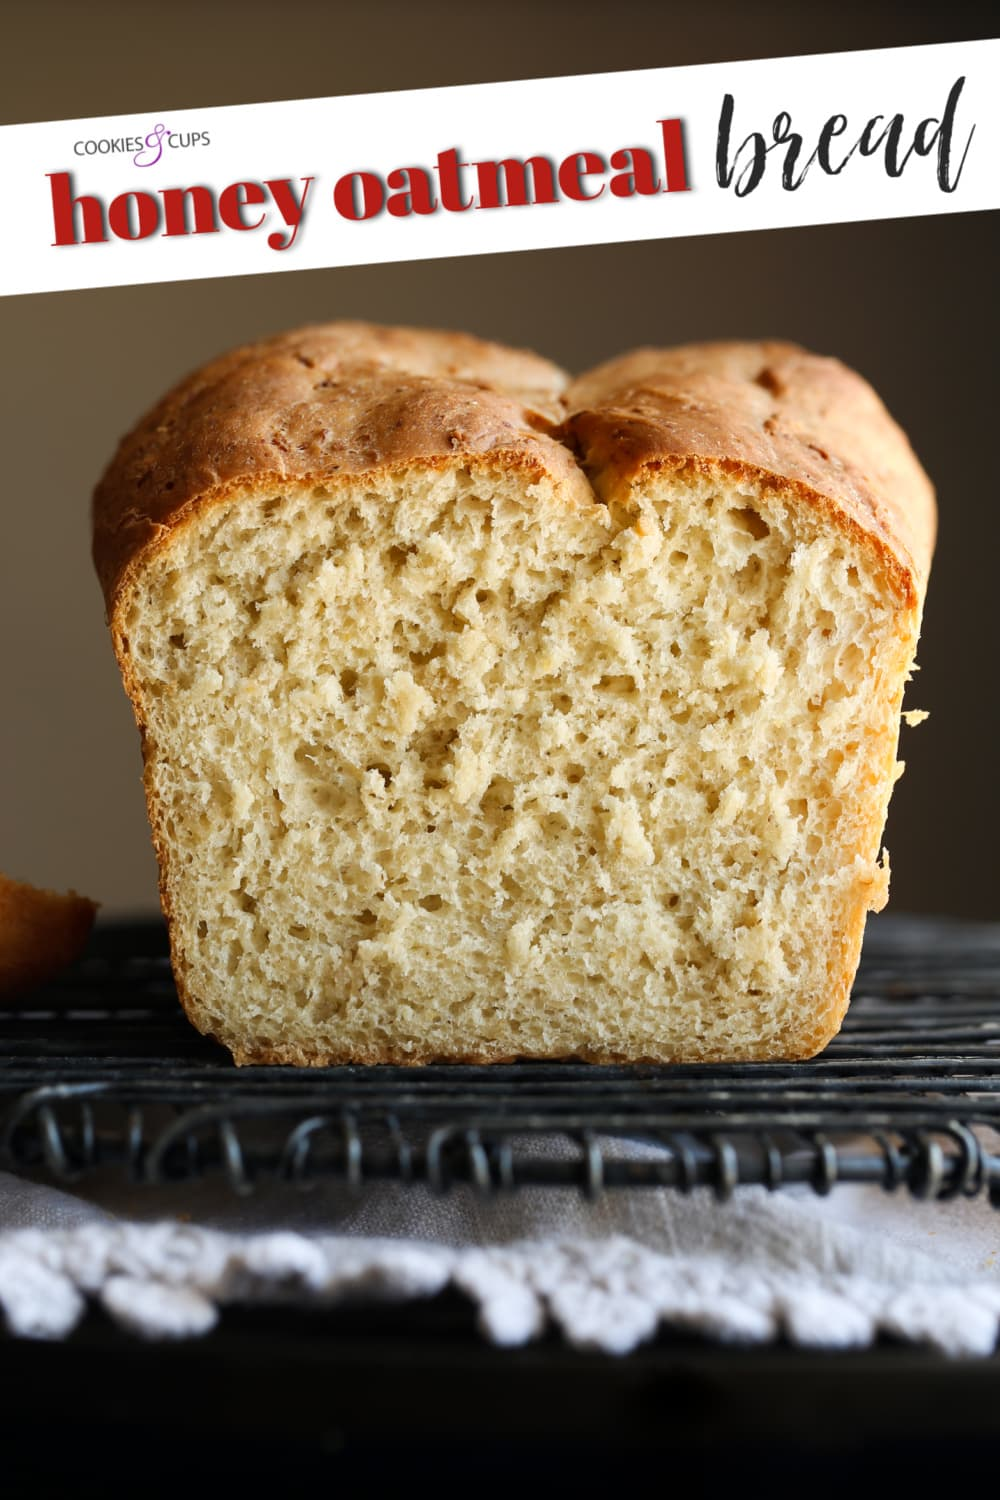 No knead honey oatmeal bread Pinterest image.